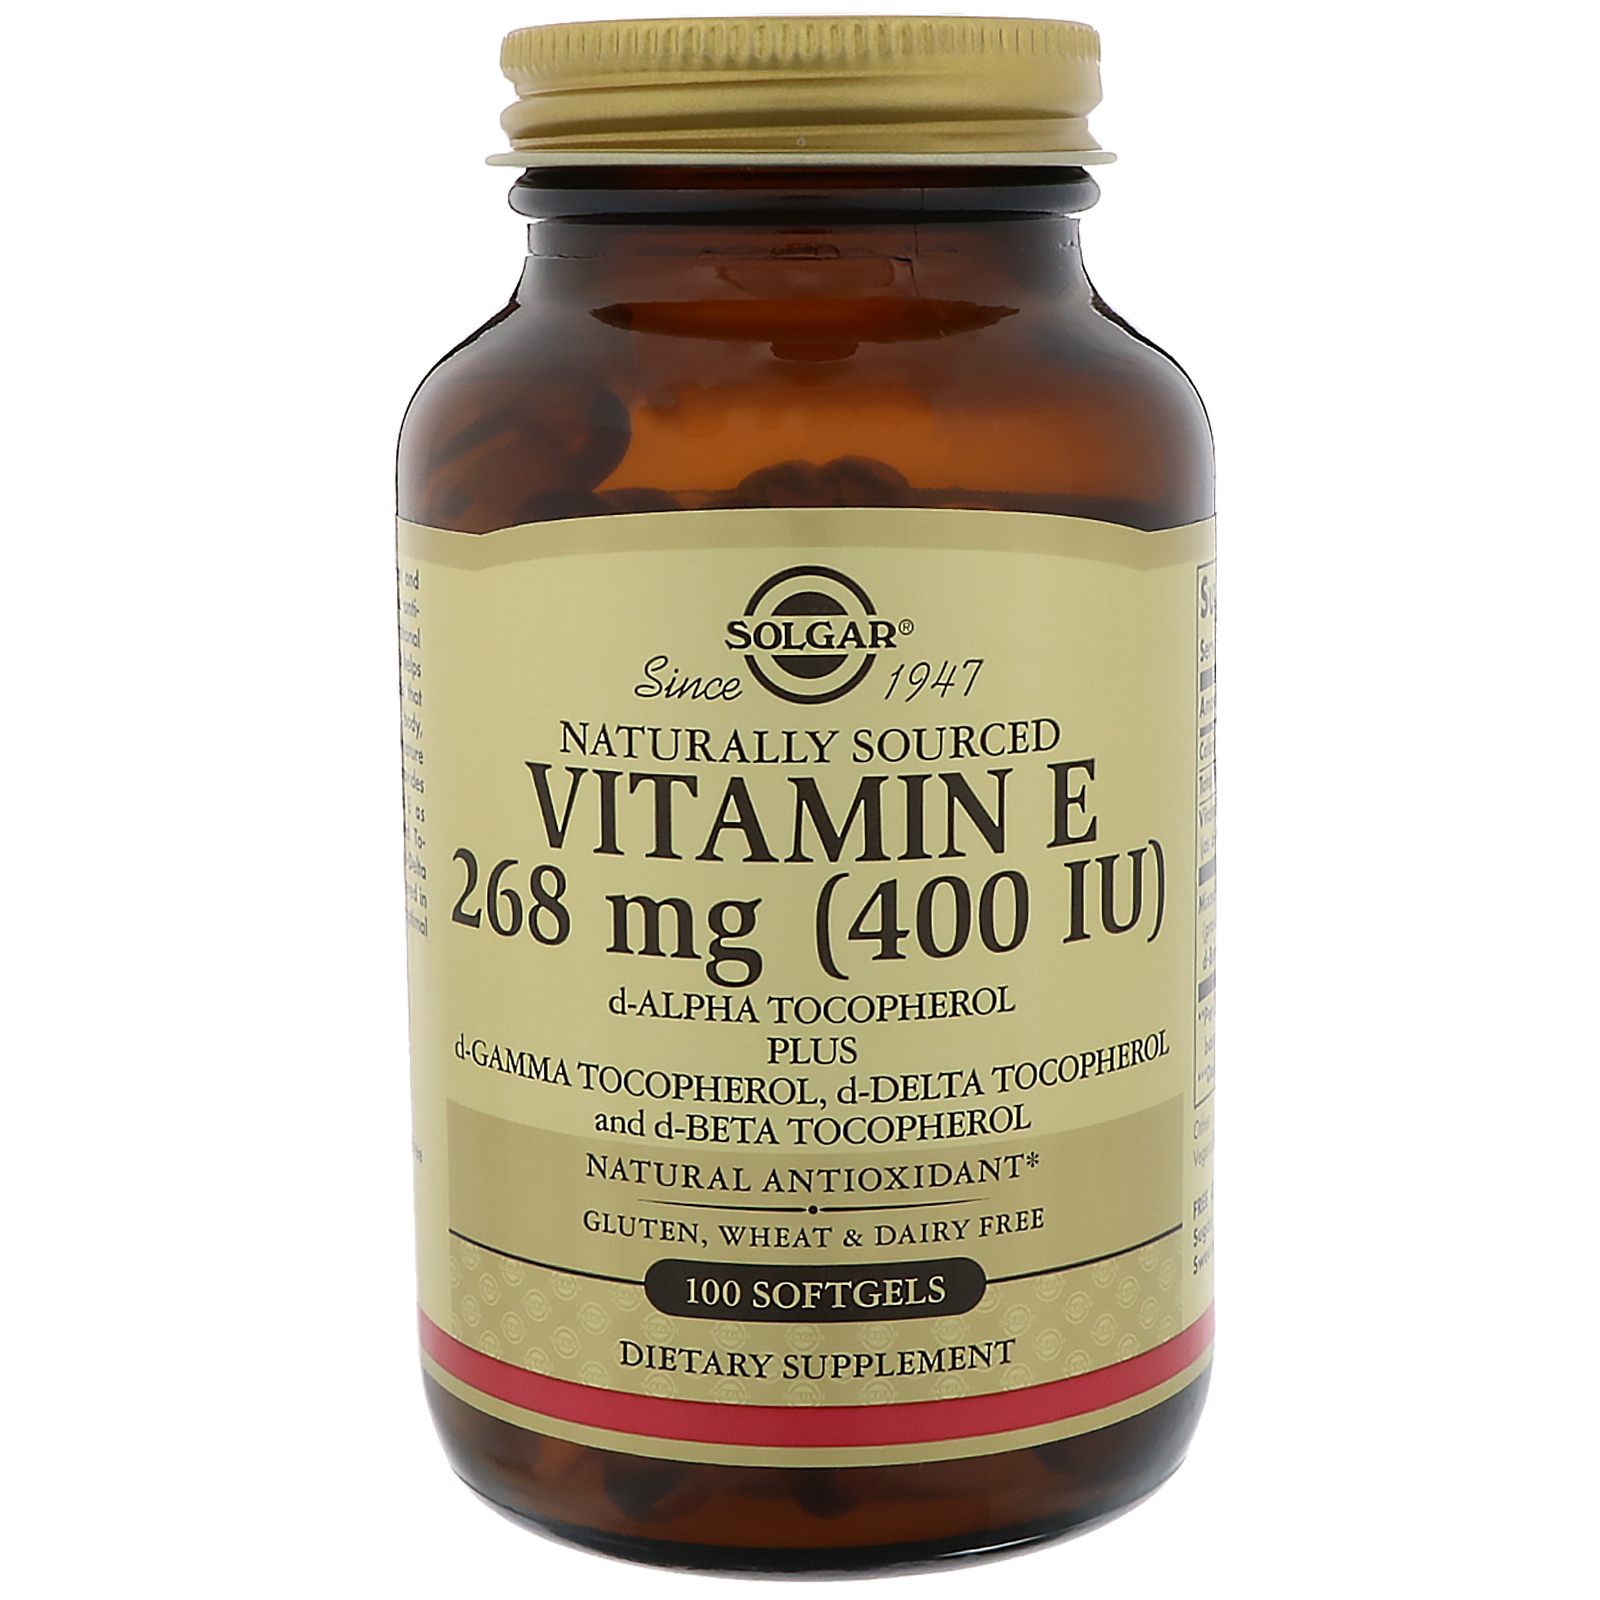 What does vitamin e 400 iu do